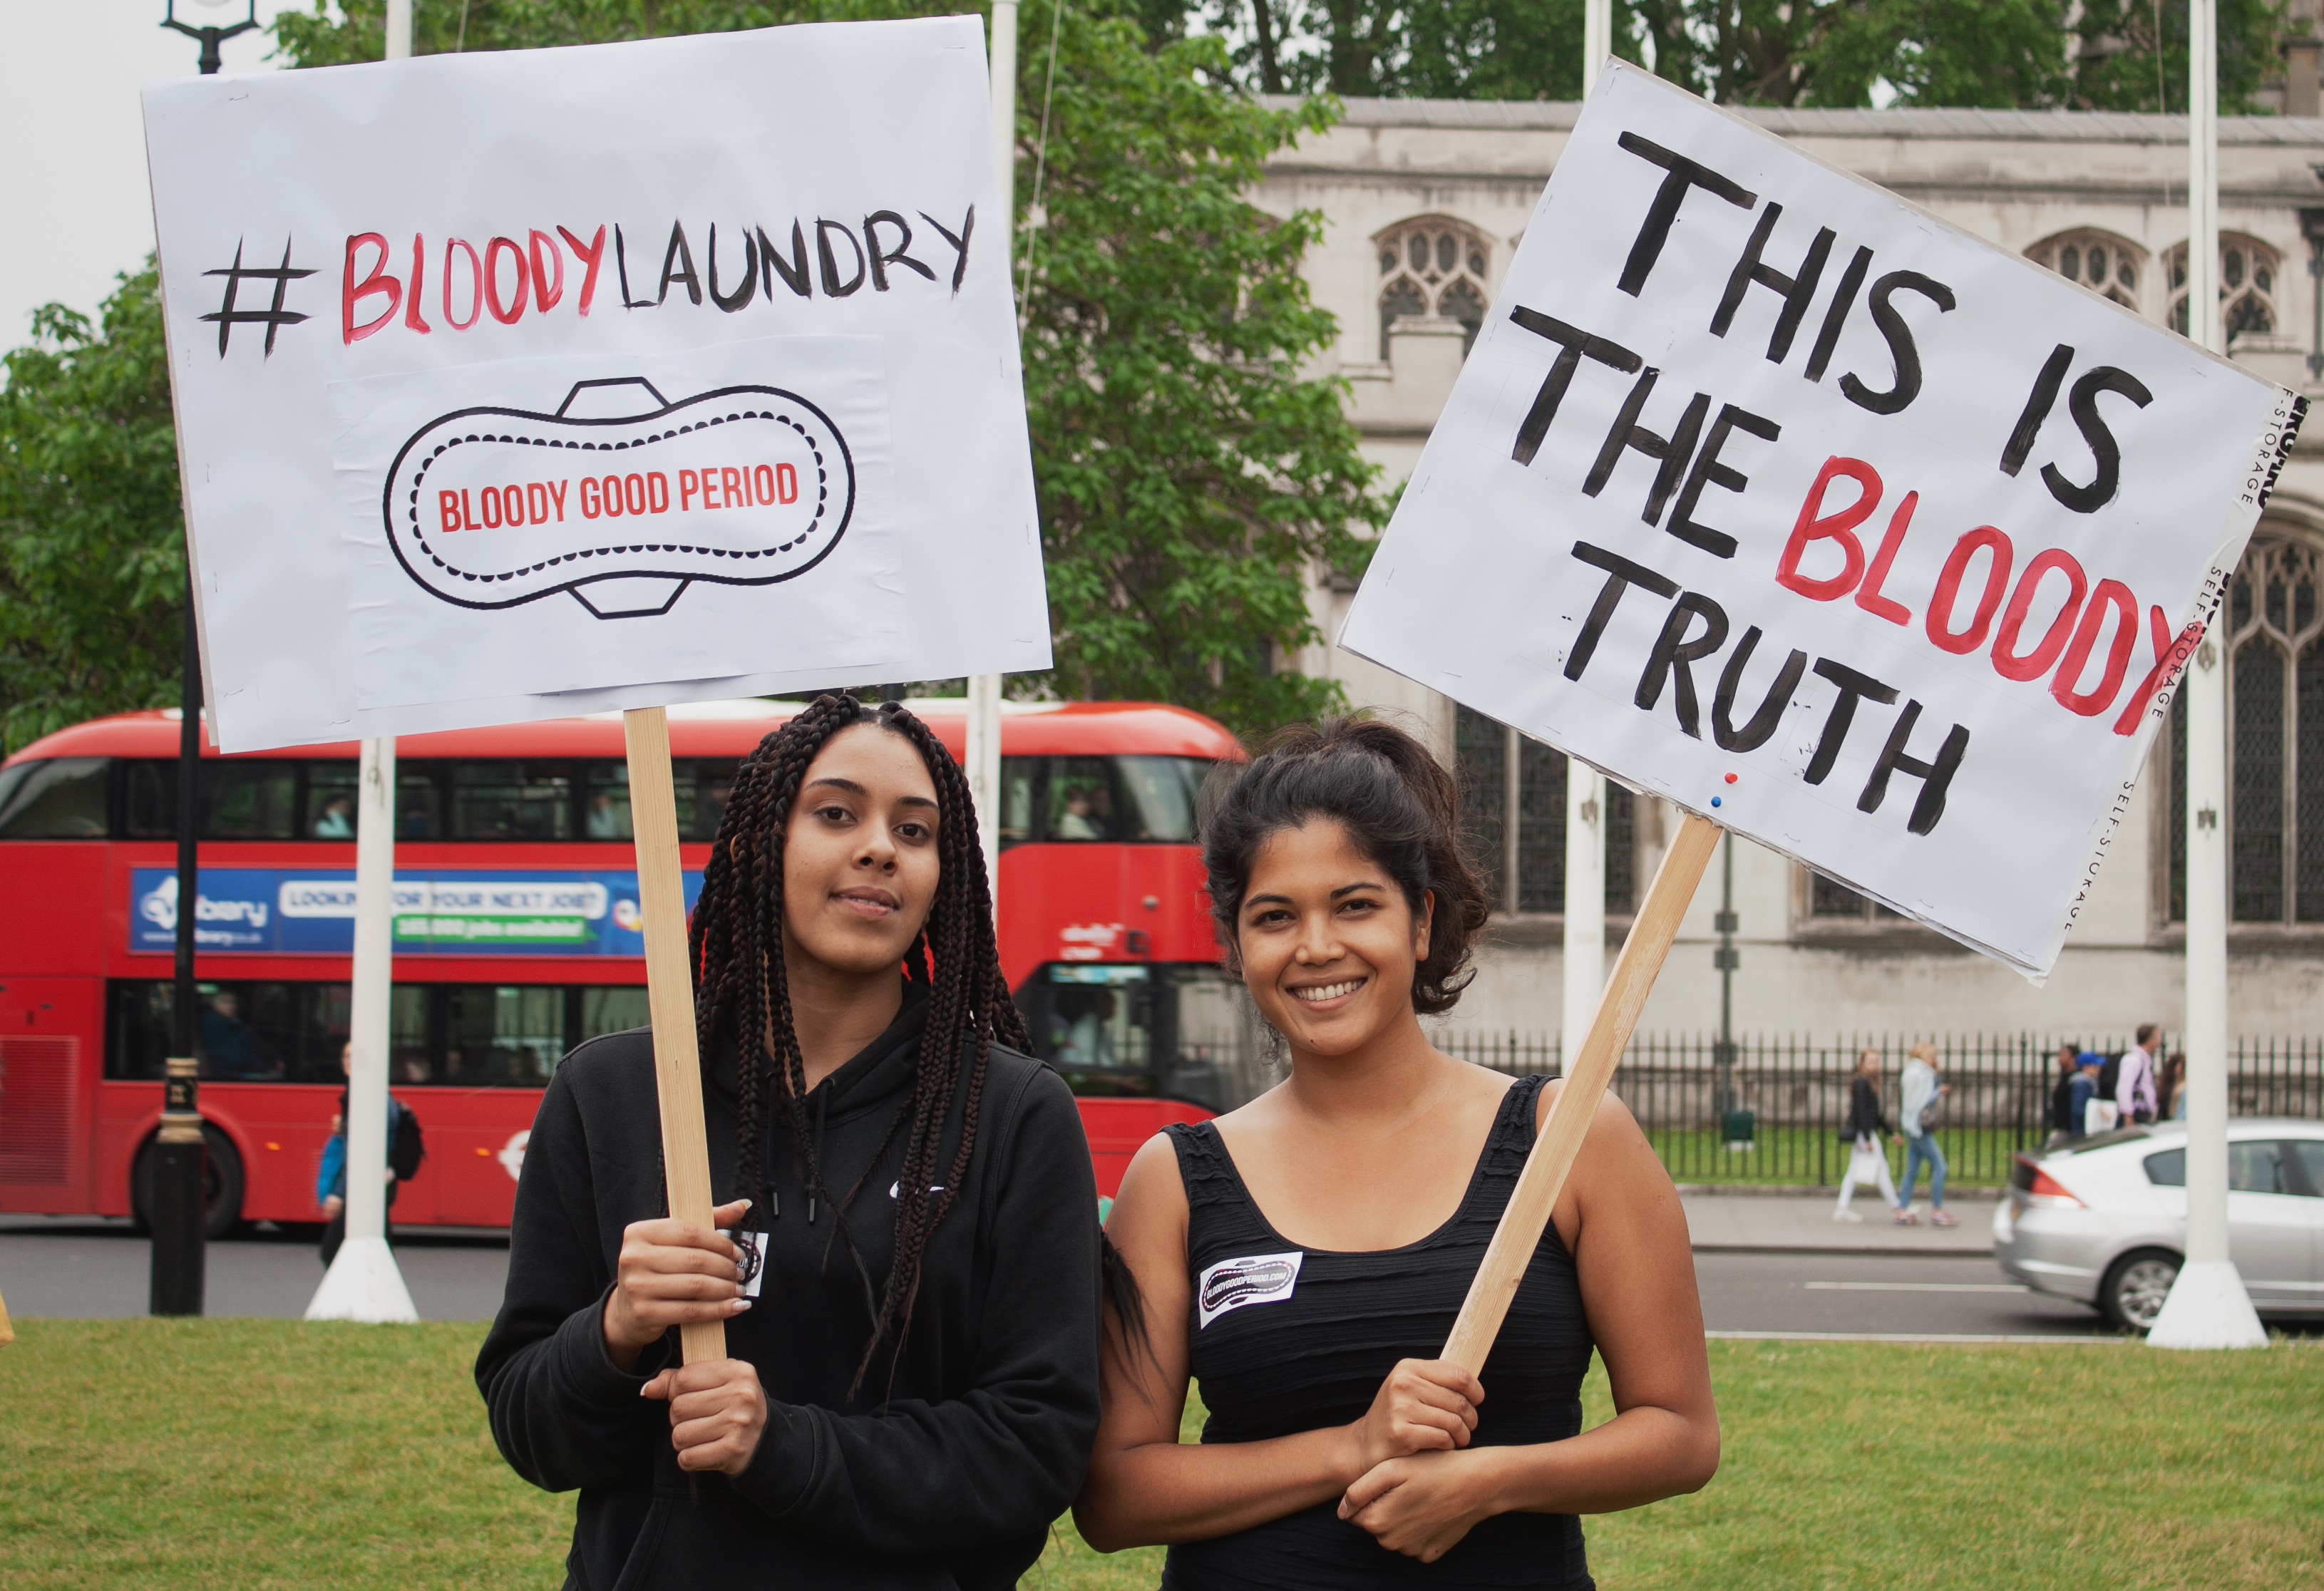 period poverty campaigners with signs